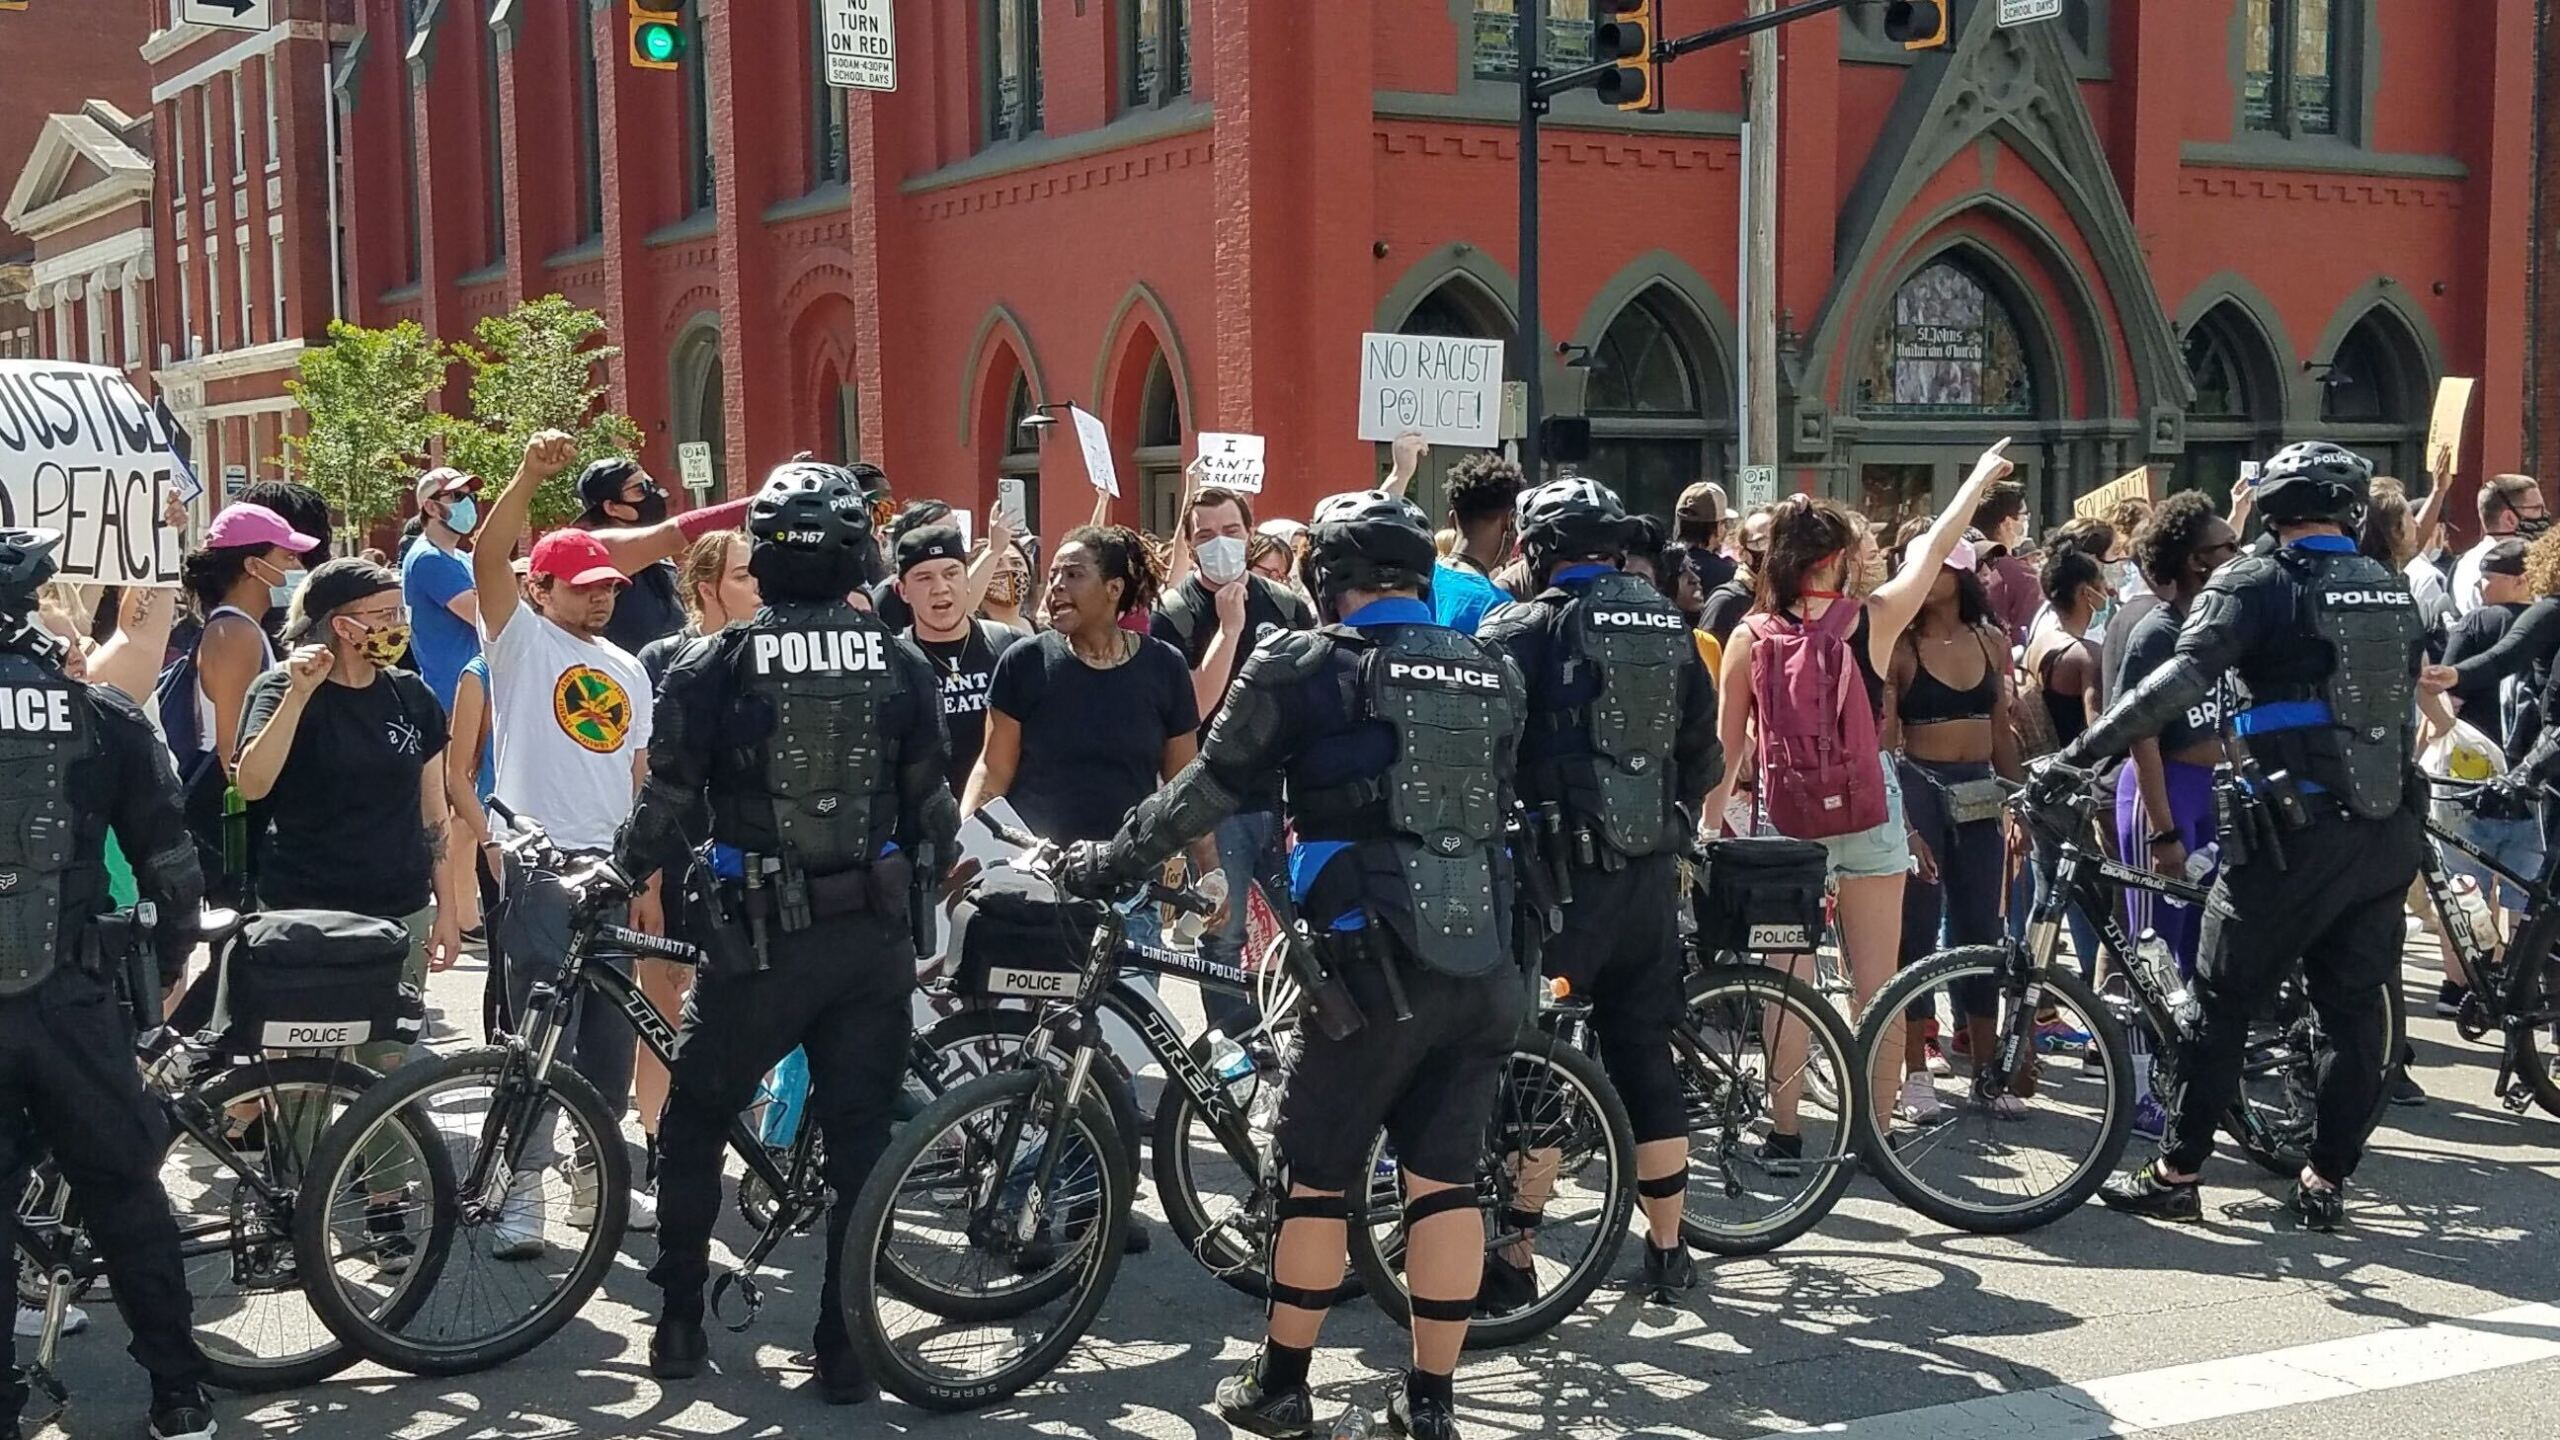 Bike police and protesters.jpg